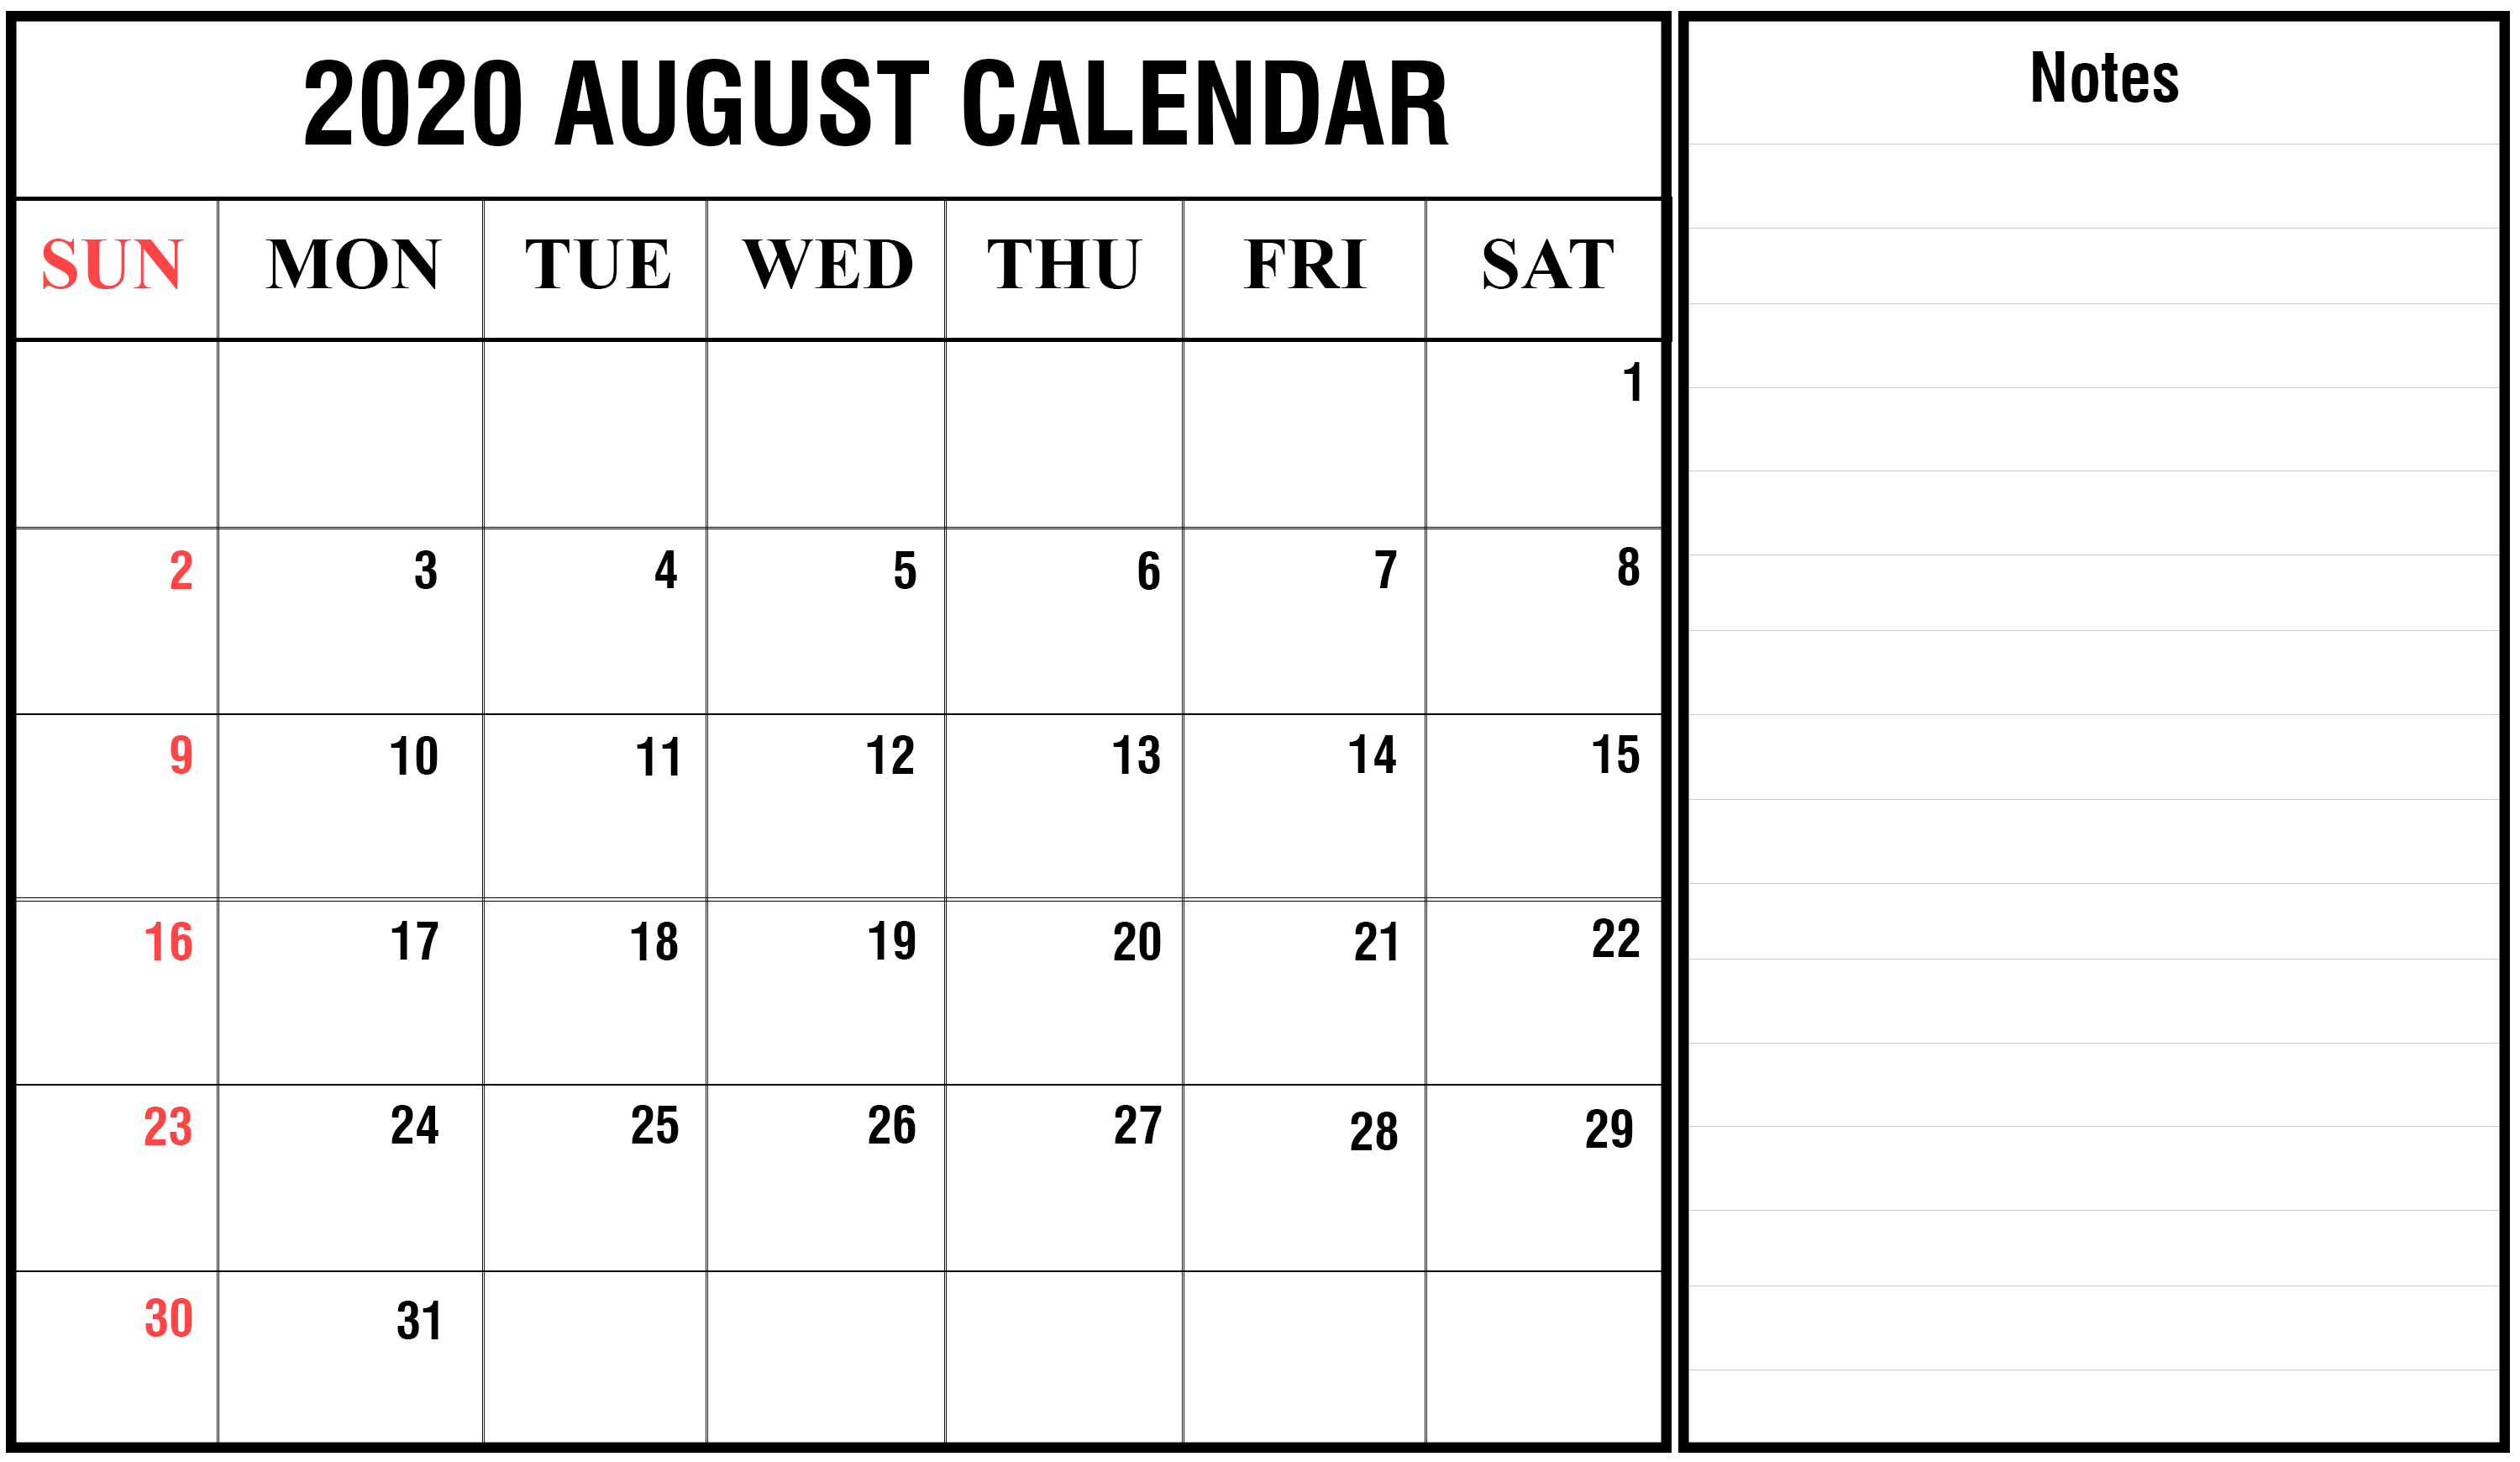 2020 August Calendar with Notes